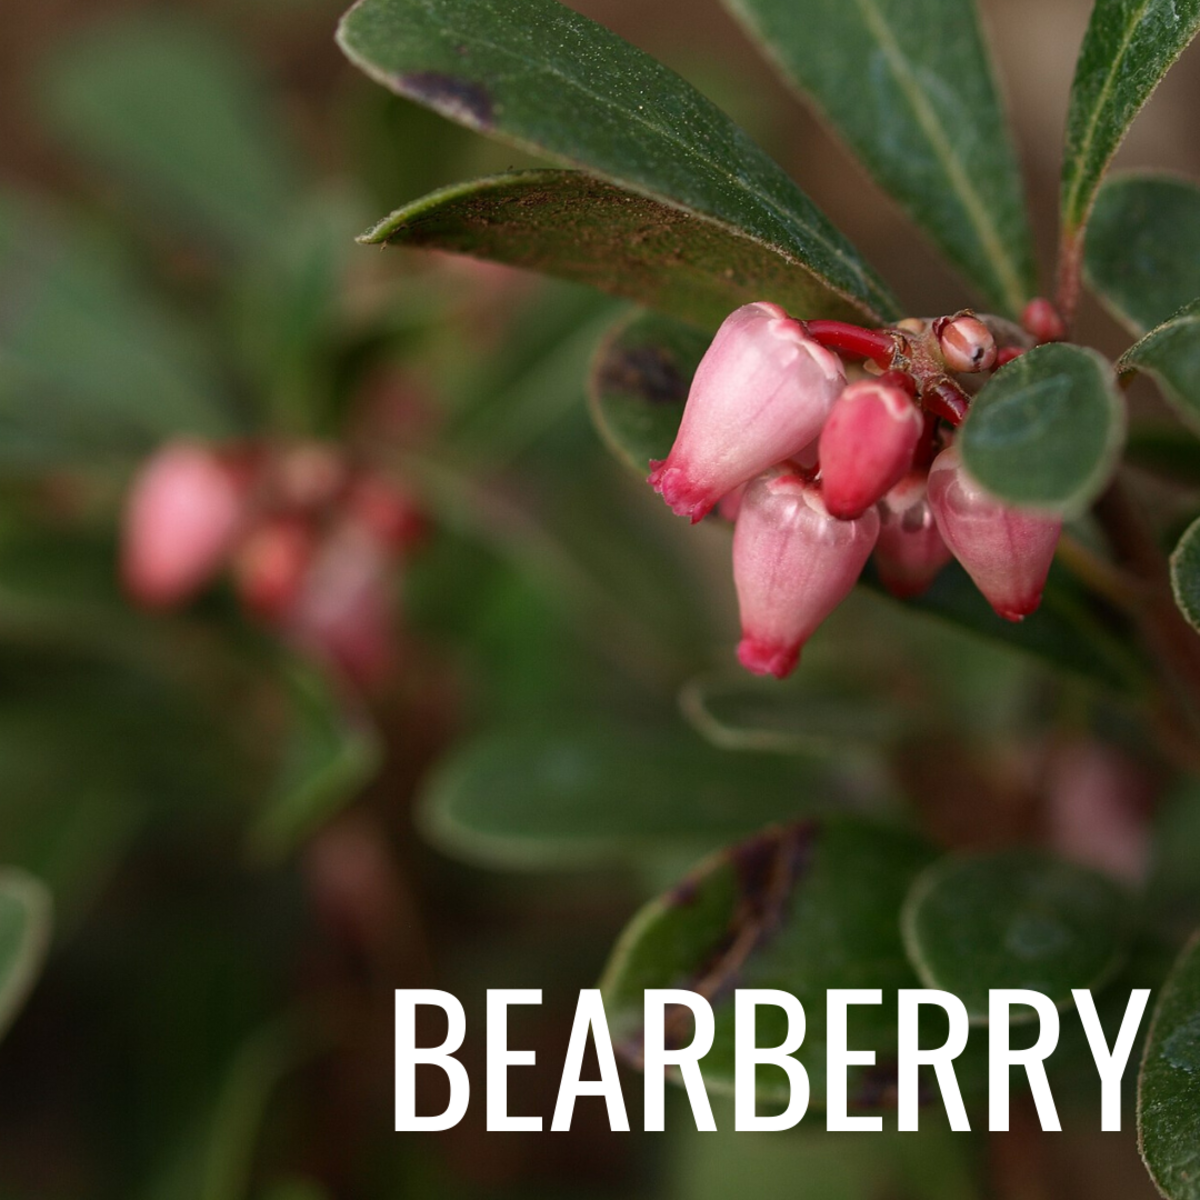 Arbutin is found in natural substances like bearberry and breaks down into hydroquinone—a commonly used skin-brightening ingredient.